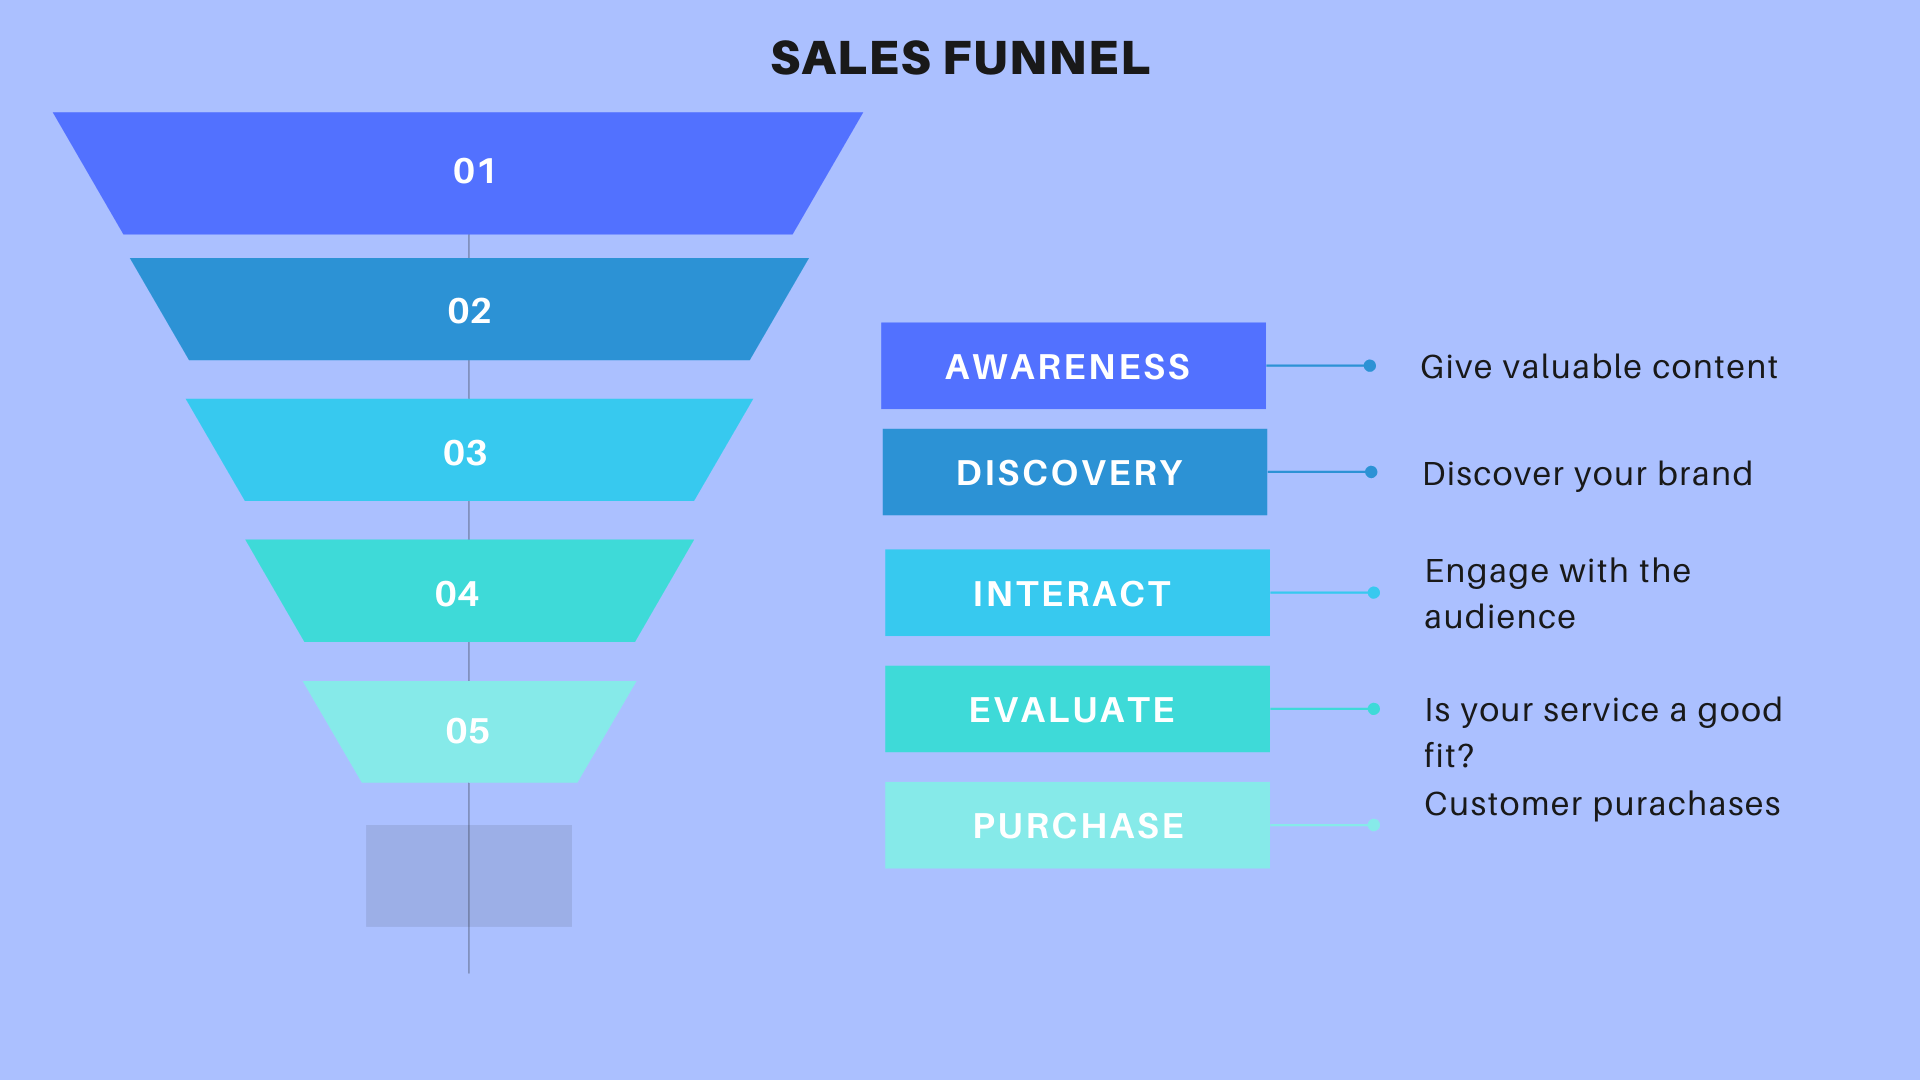 ResultFlow Review - SalesFunnel